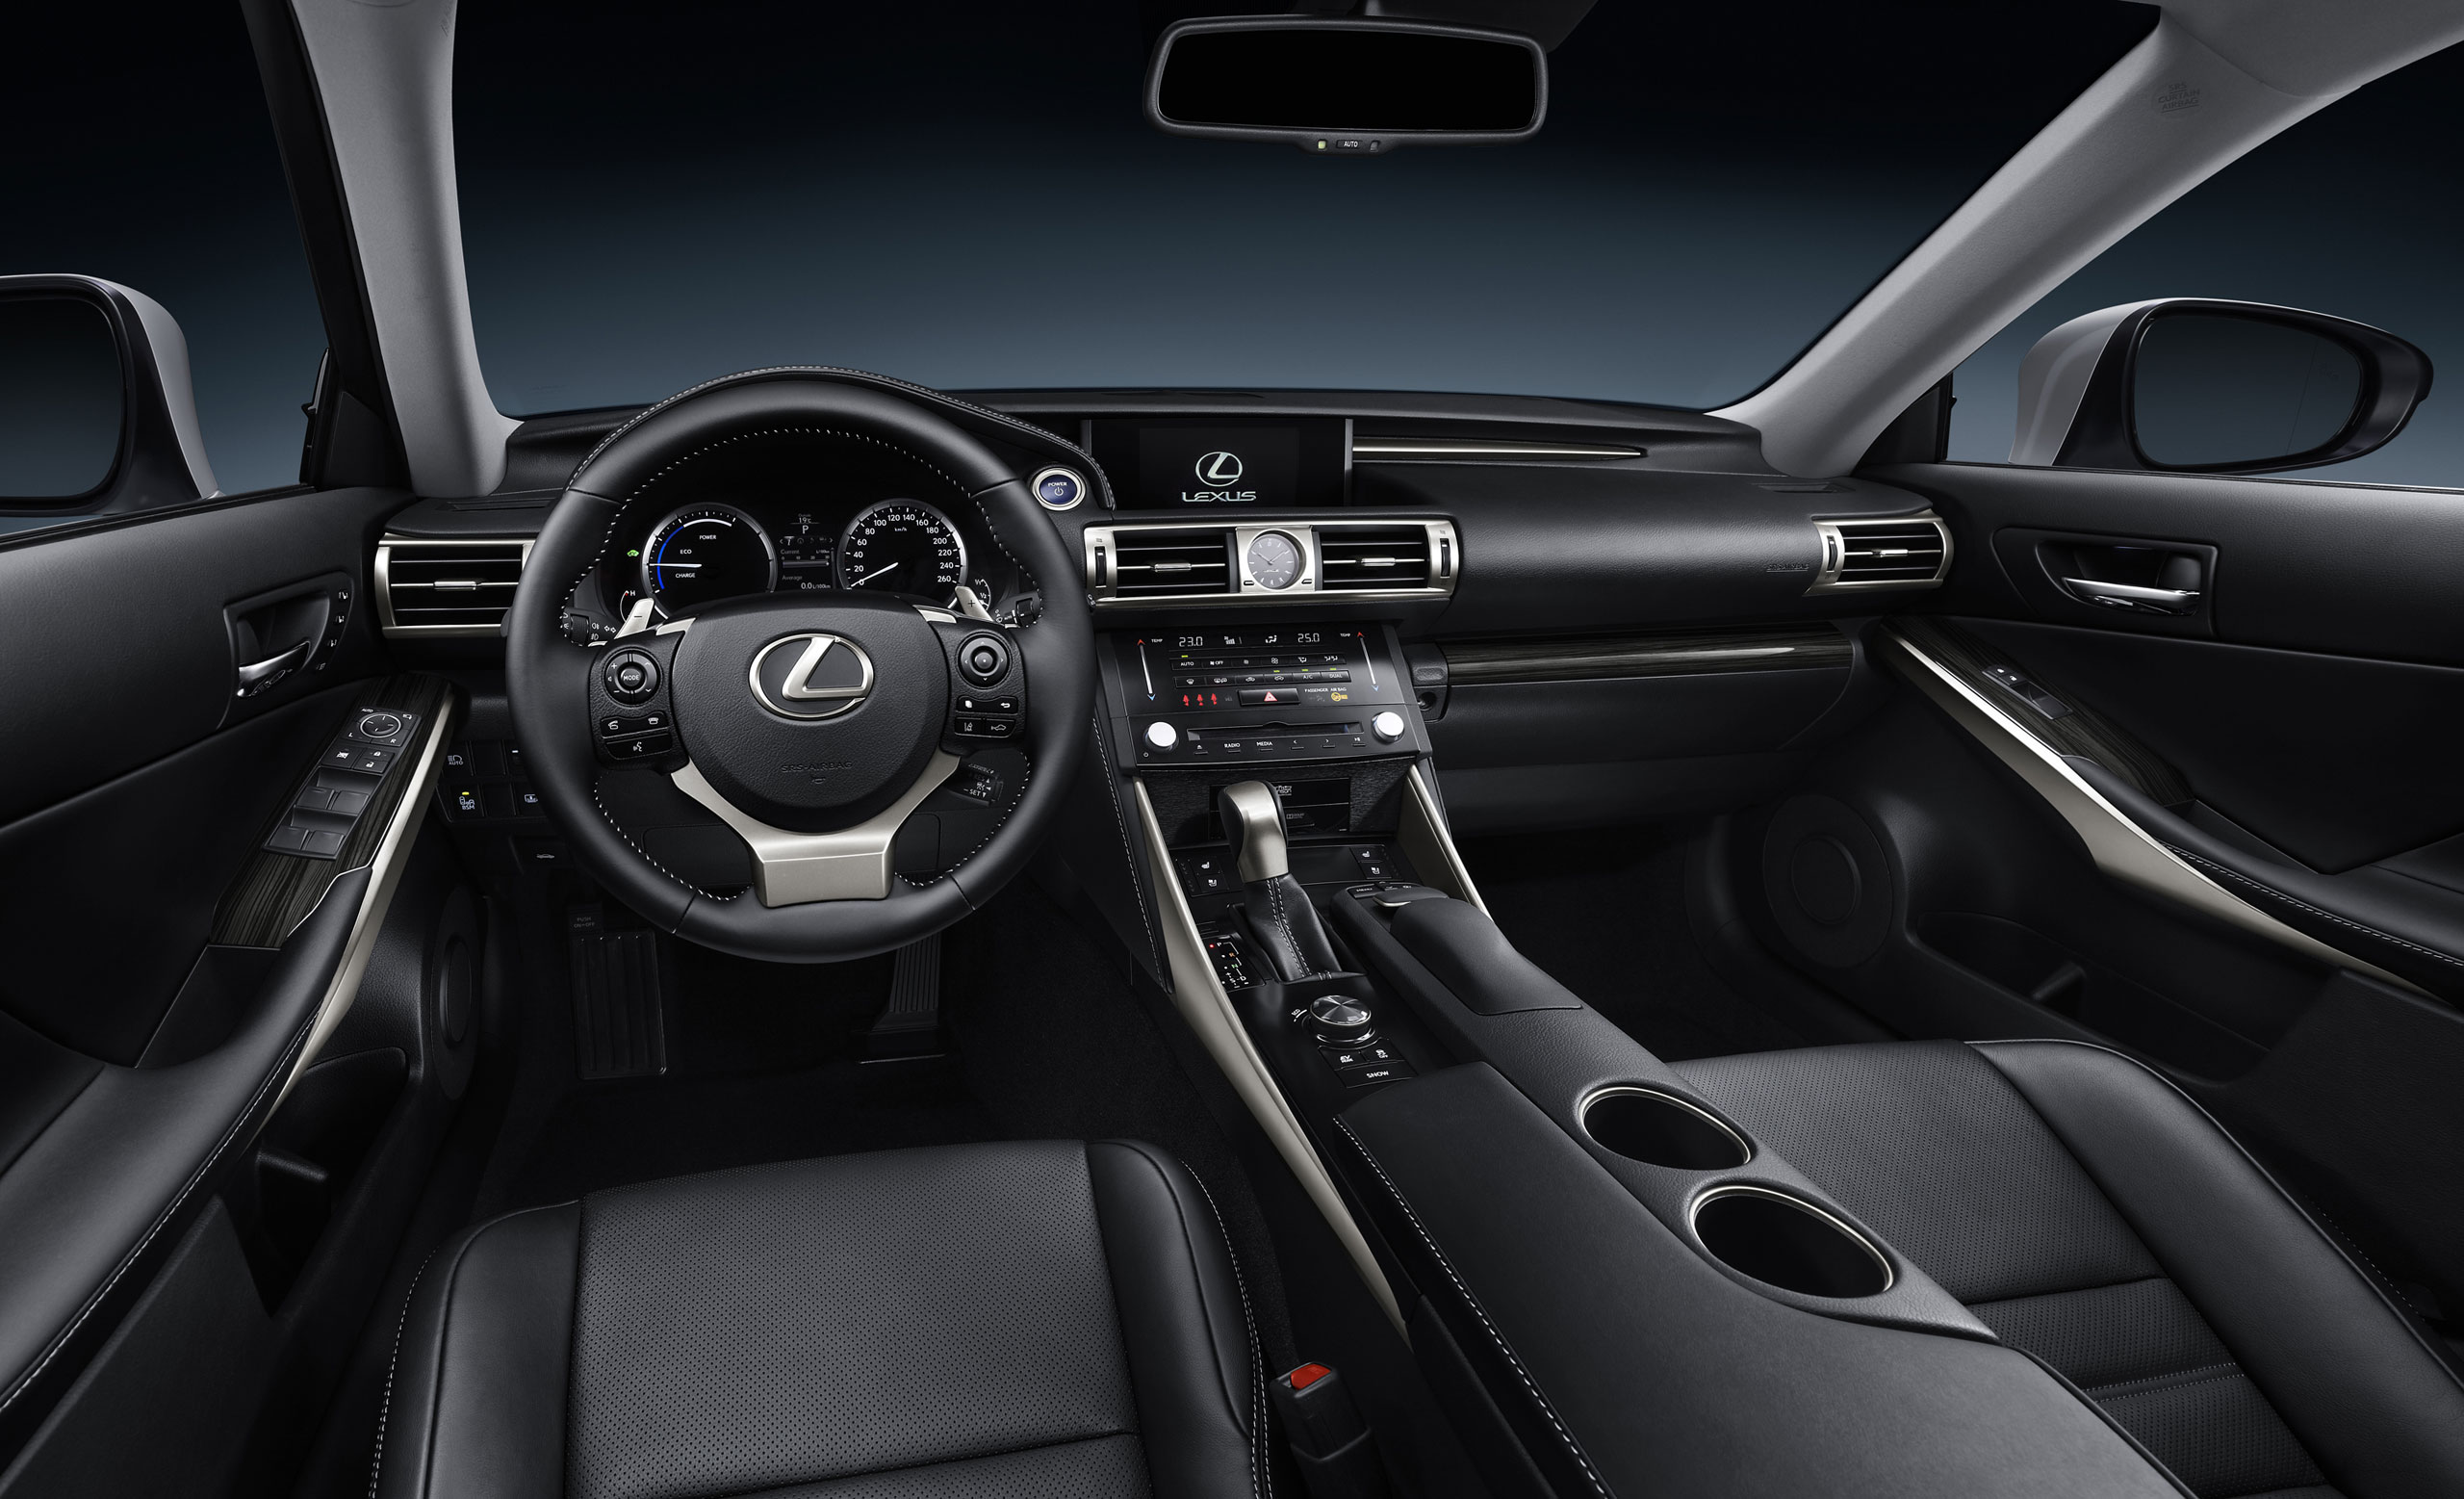 Lexus IS 300h & IS 300h F SPORT Photo Gallery | Lexus ...